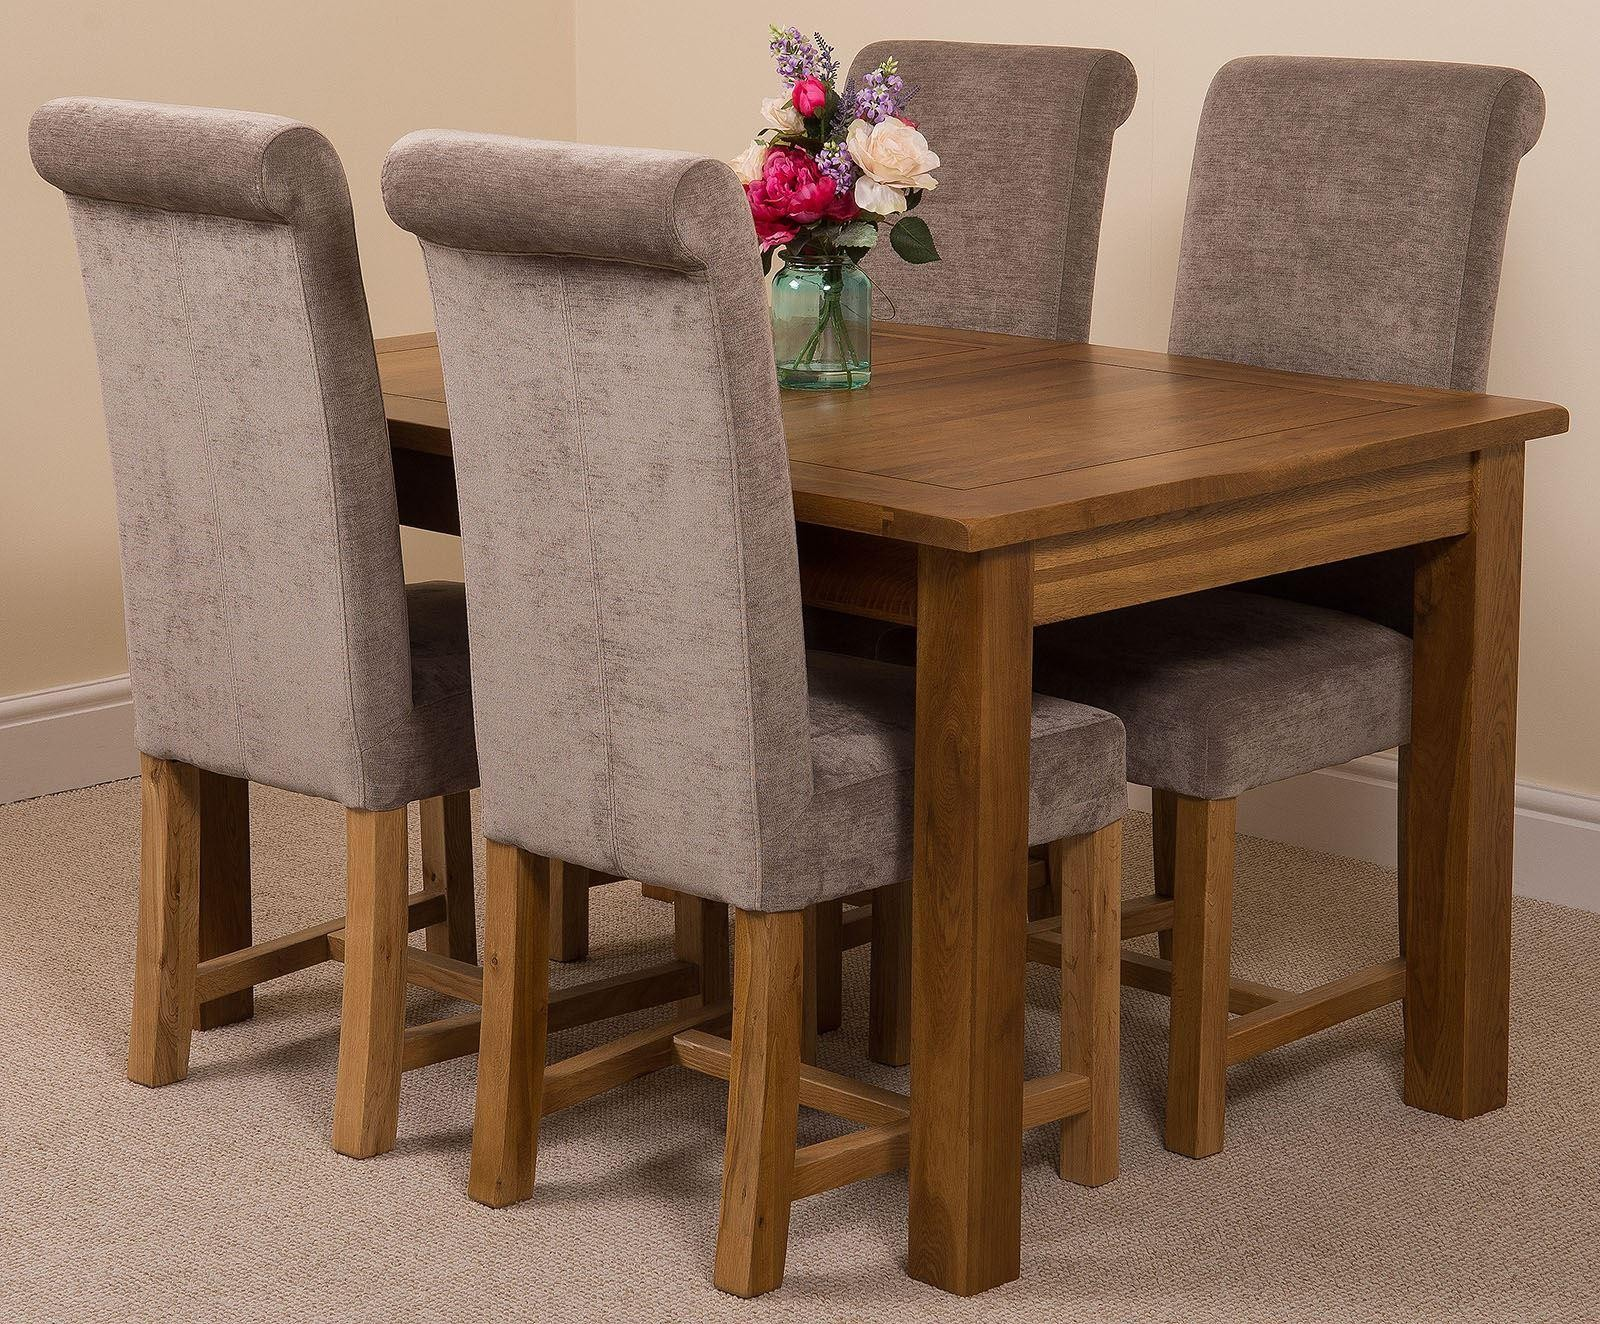 Cotswold Rustic Solid Oak 132cm-198cm Extending Farmhouse Dining Table with 4 Washington Dining Chairs [Grey Fabric]